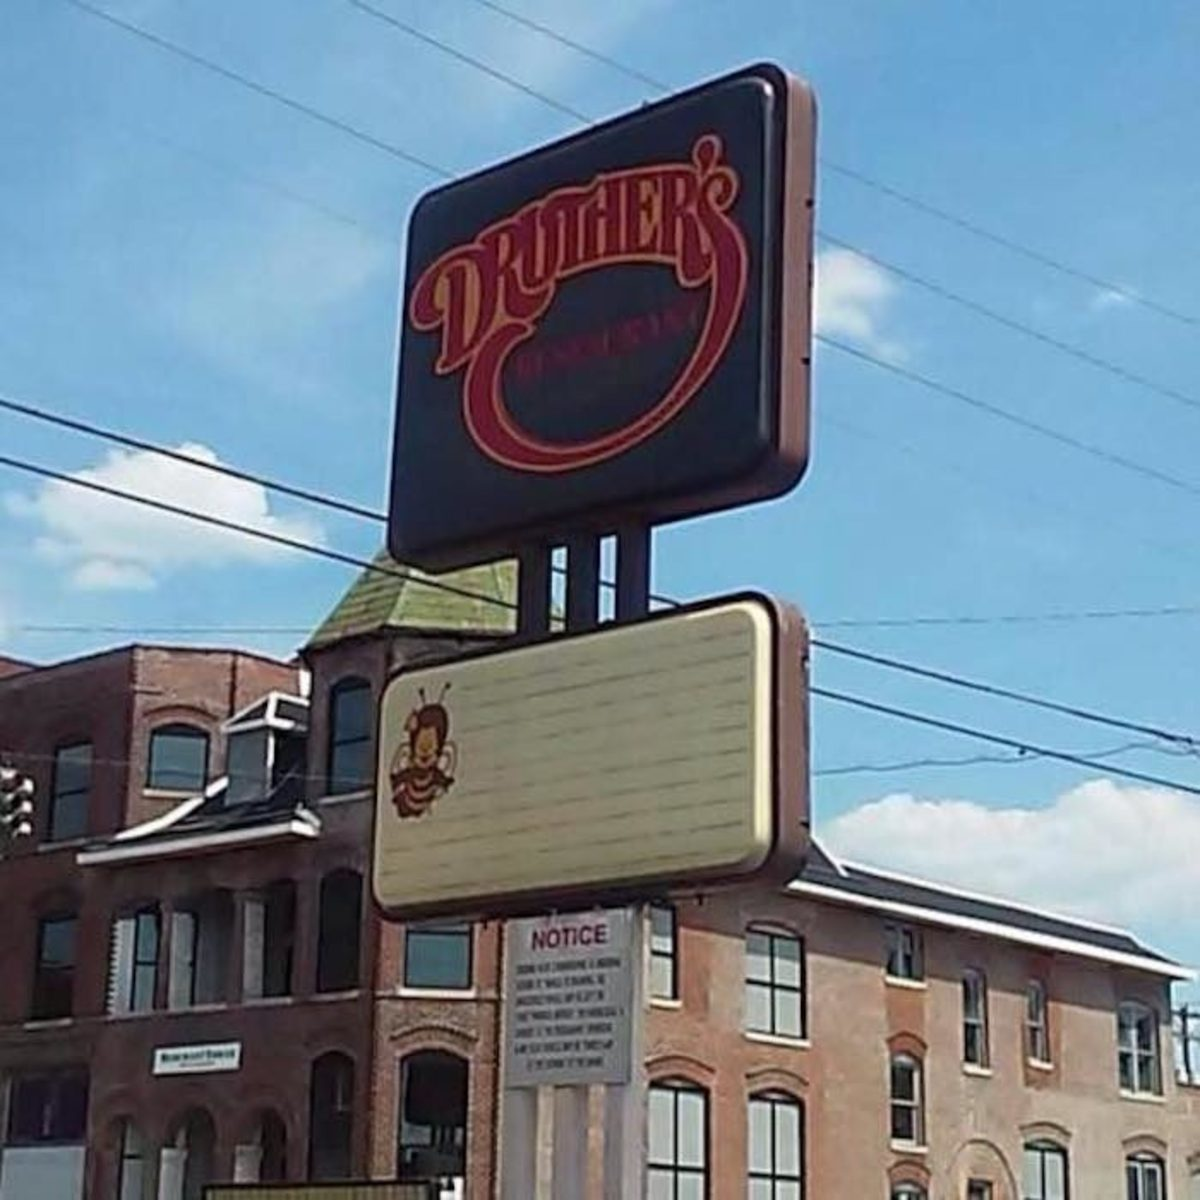 The photo is of a restaurant in Kentucky as it is the last of the Druthers restaurants.